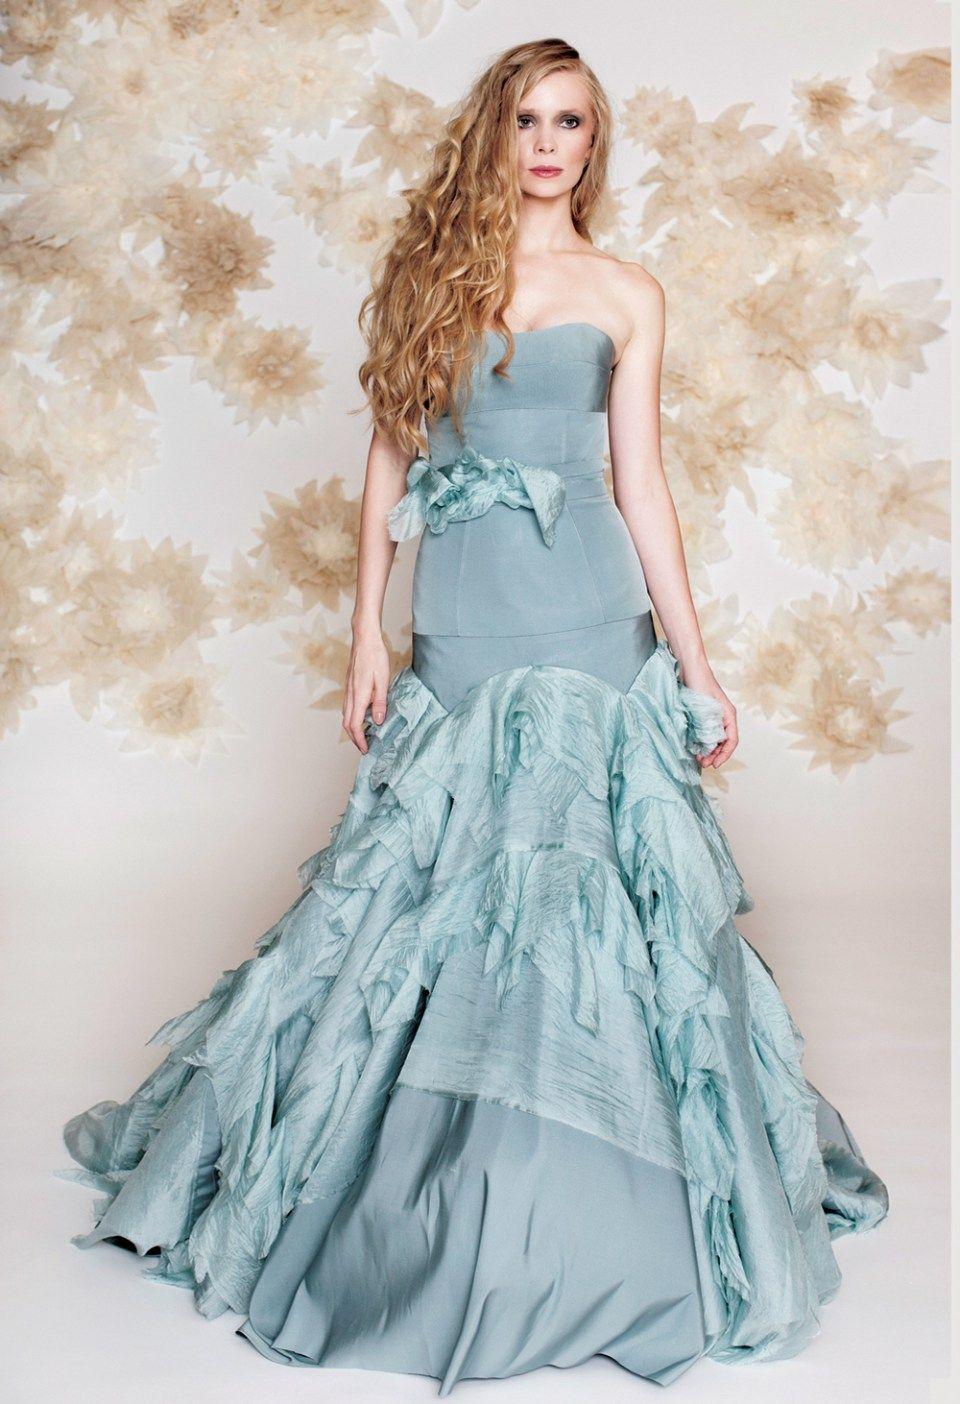 More blue wedding gowns that will have you rethinking traditional